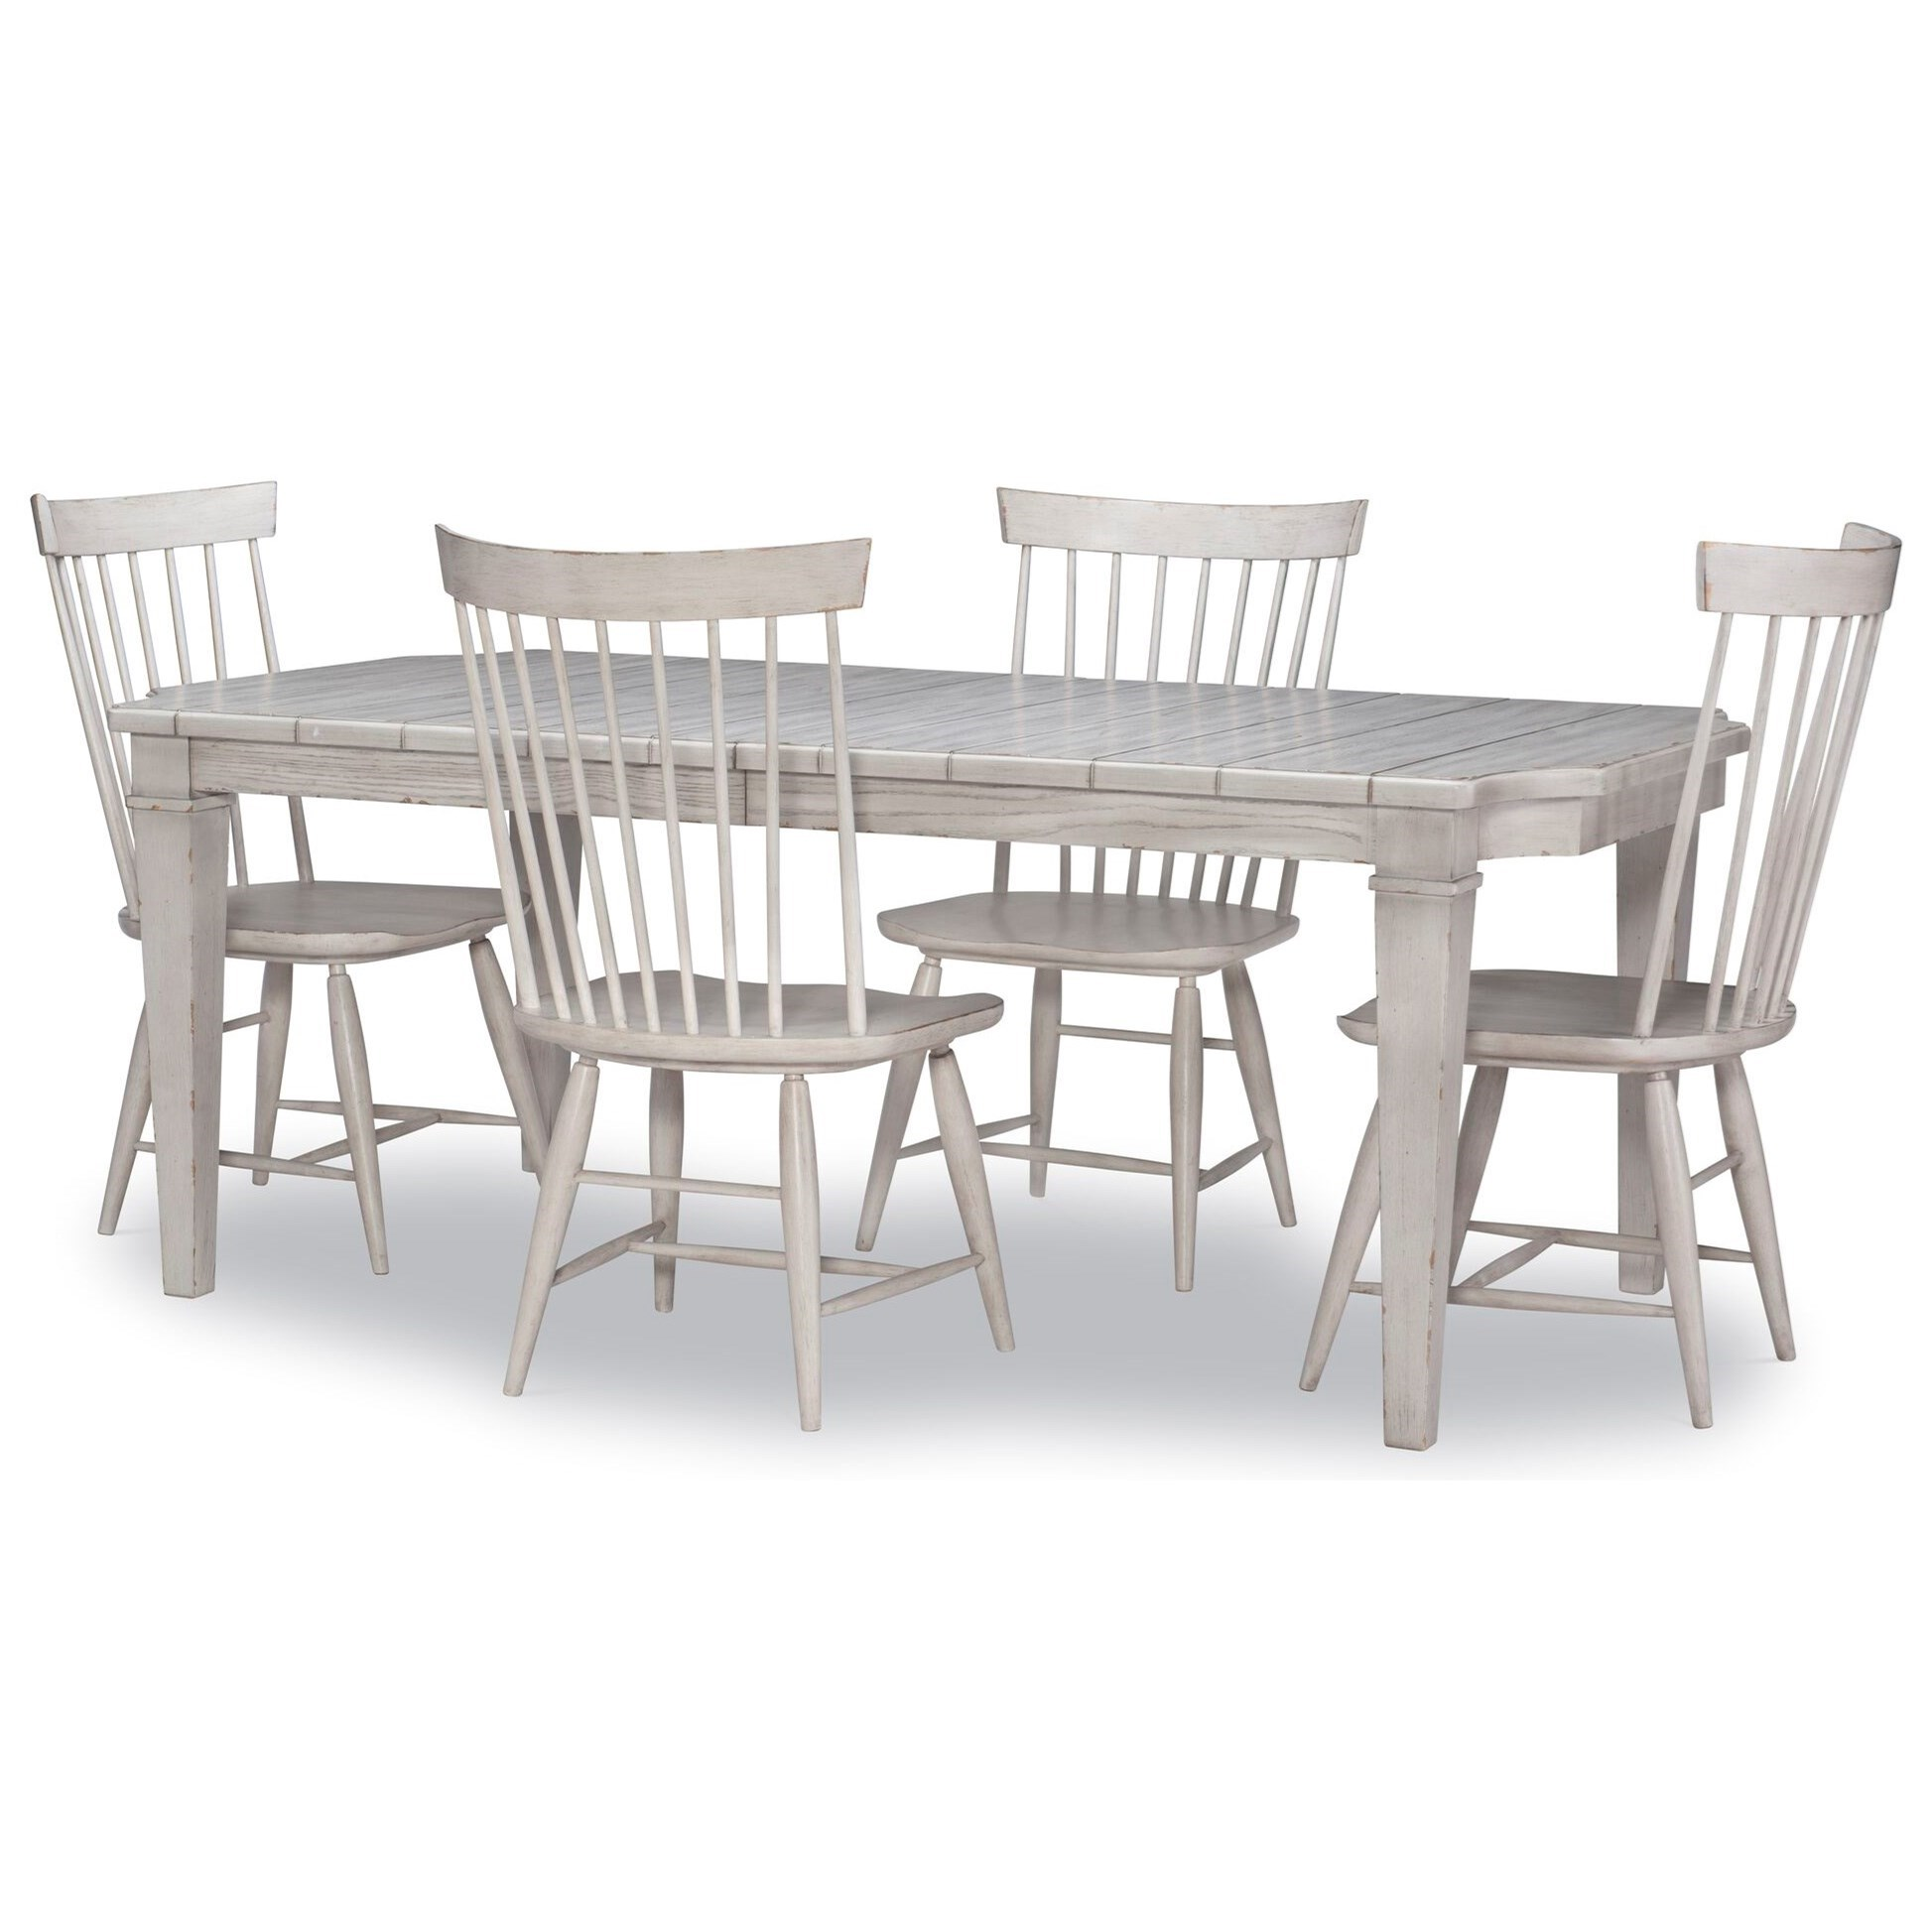 Belhaven 5-Piece Table and Chair Set by Legacy Classic at Johnny Janosik